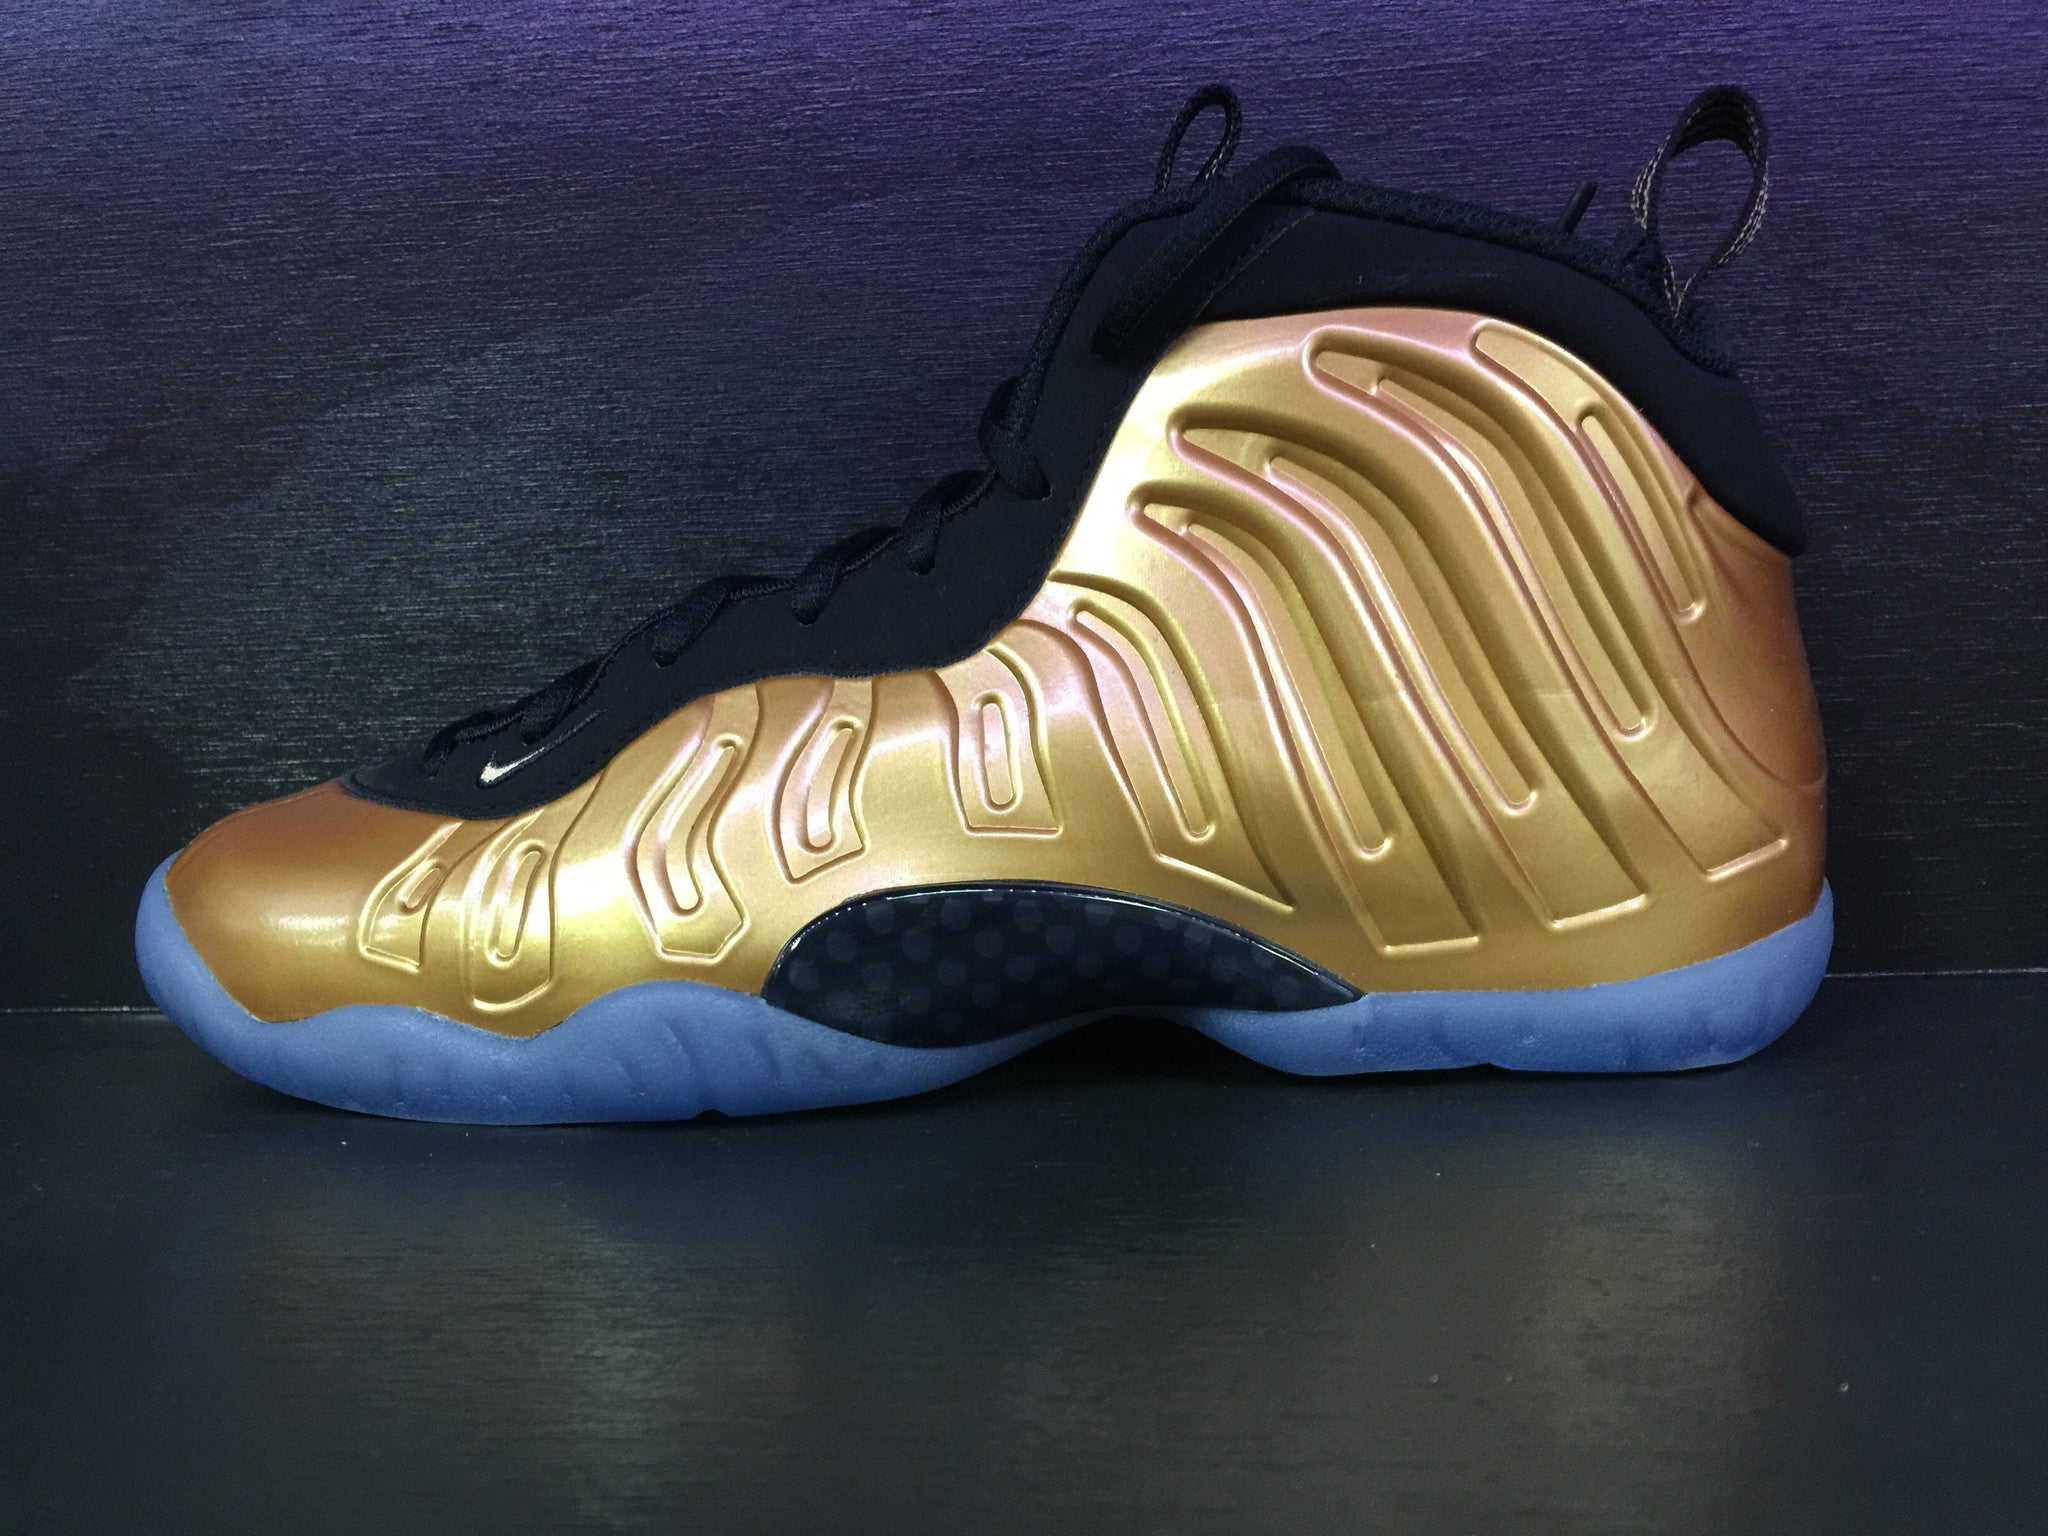 Nike Air Foamposite One 'Metallic Gold' Grade School